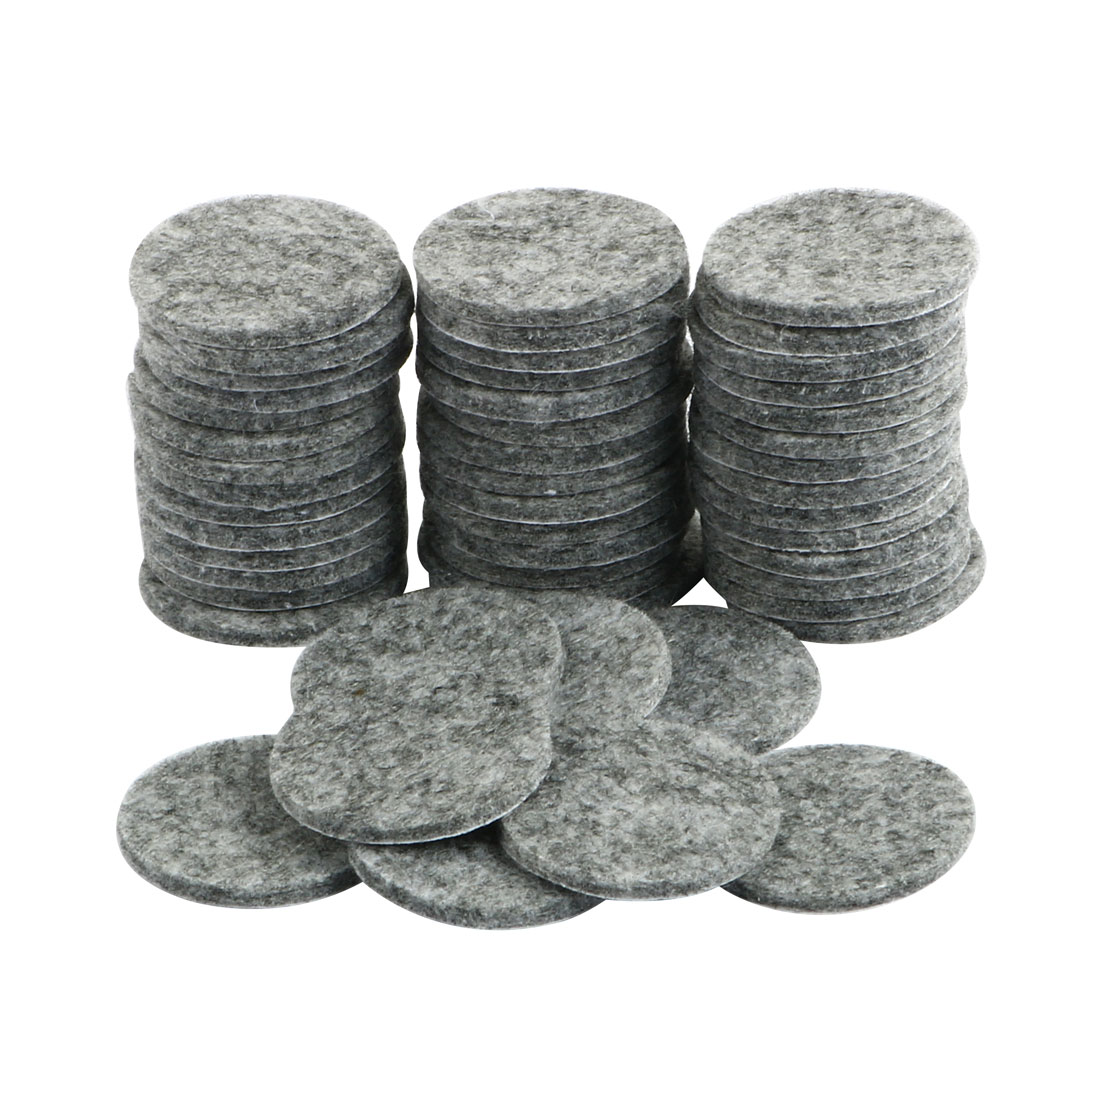 50Pcs Round Shaped Table Chair Furniture Leg Felt Mat Pad Gray